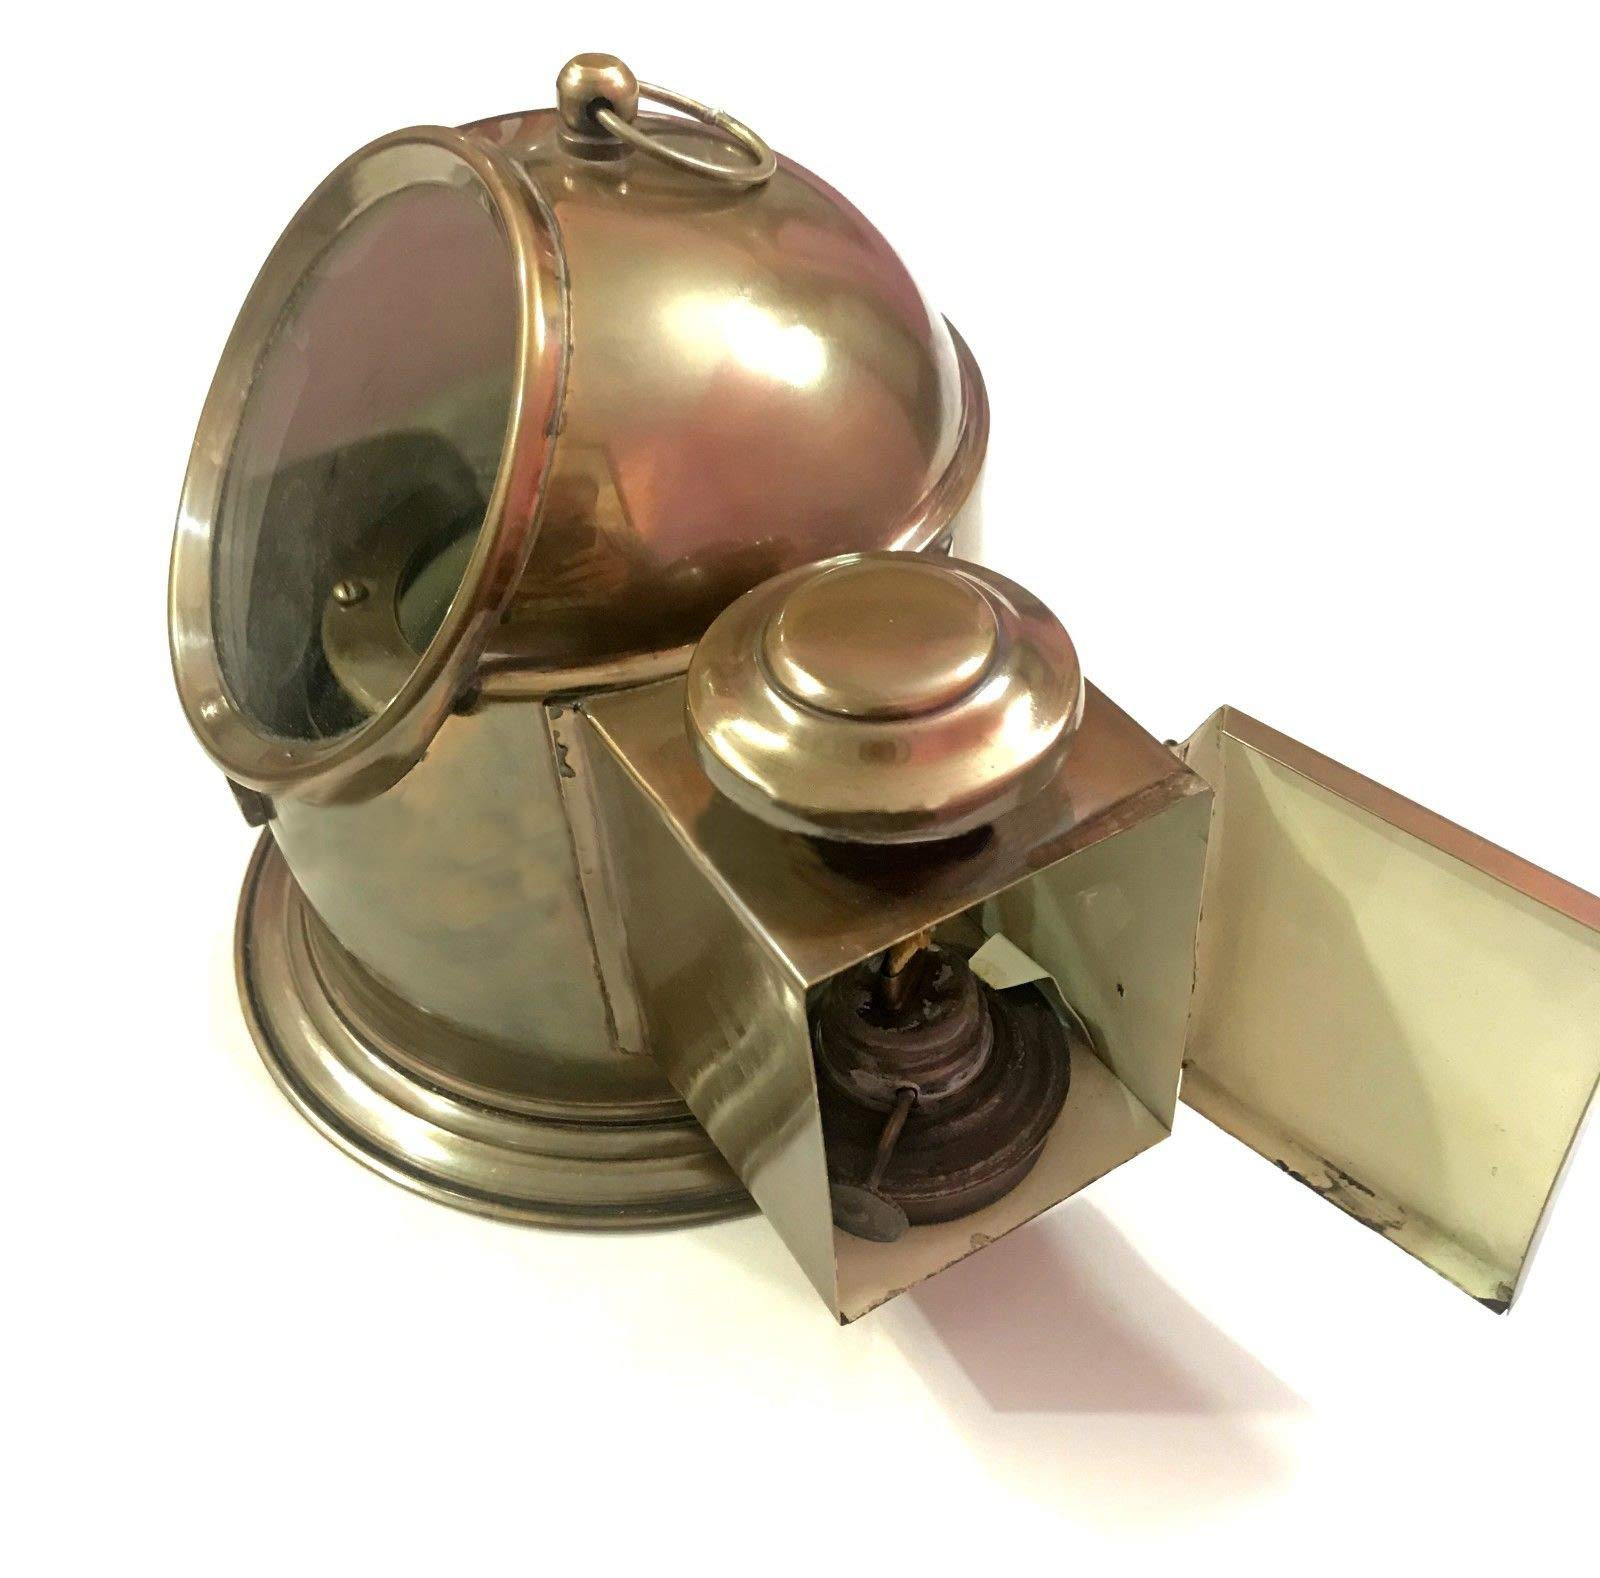 Antique Brass Floating Dial Binnacle Gimbled Compass Nautical Ship/Boat Oil Lamp by Antique (Image #3)